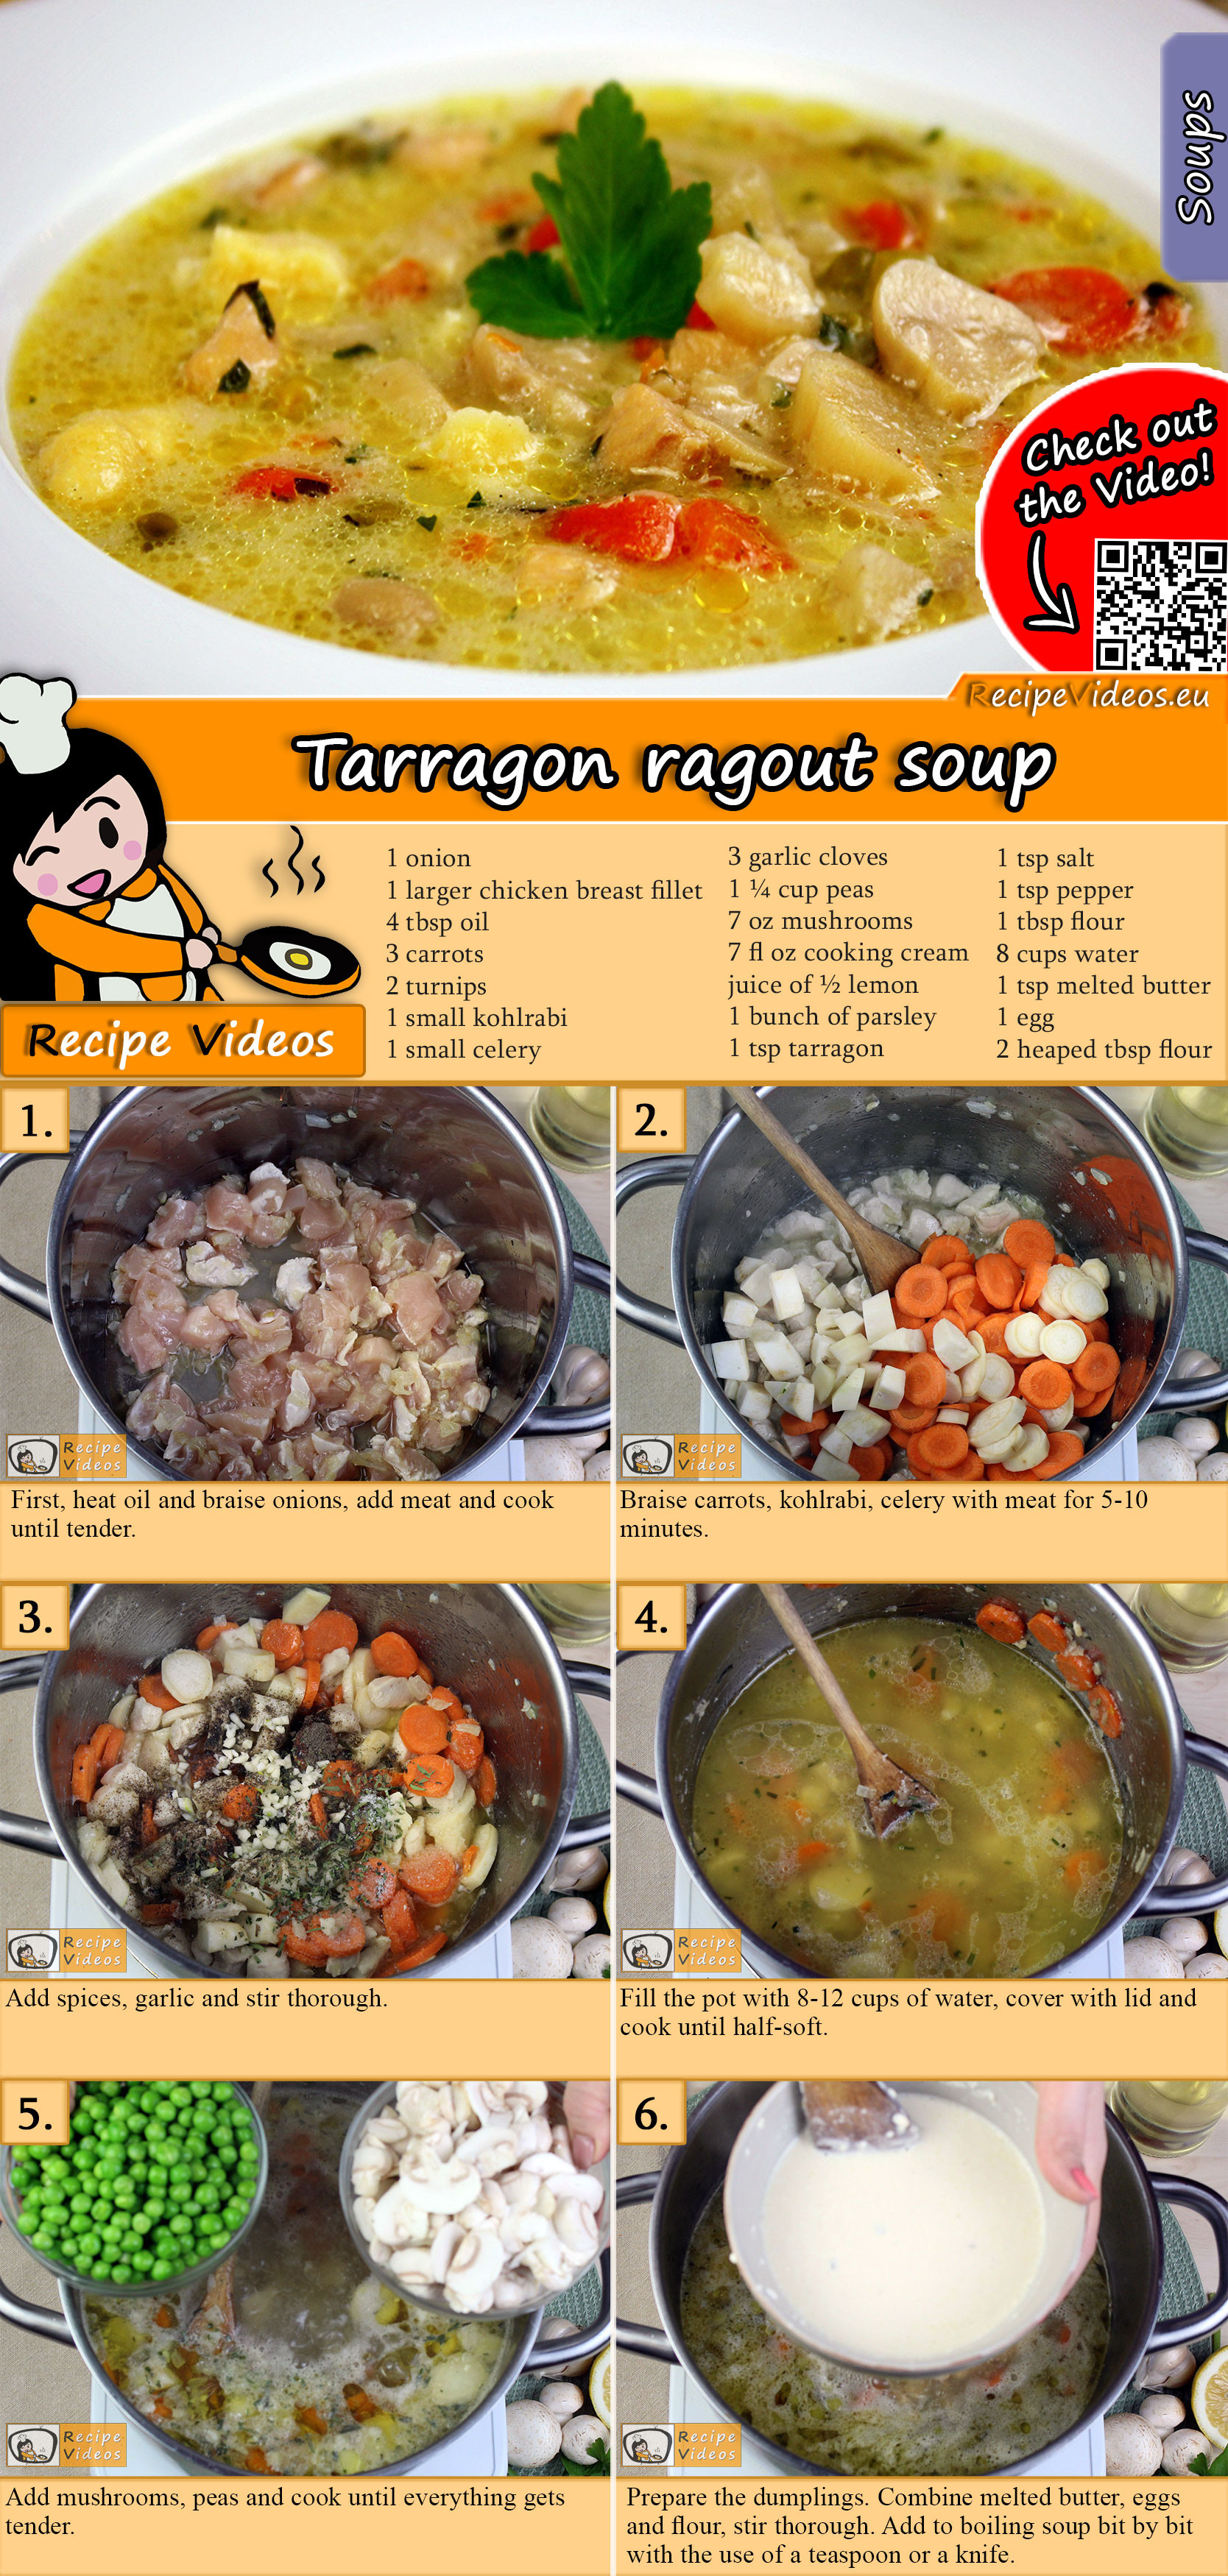 Tarragon ragout soup recipe with video